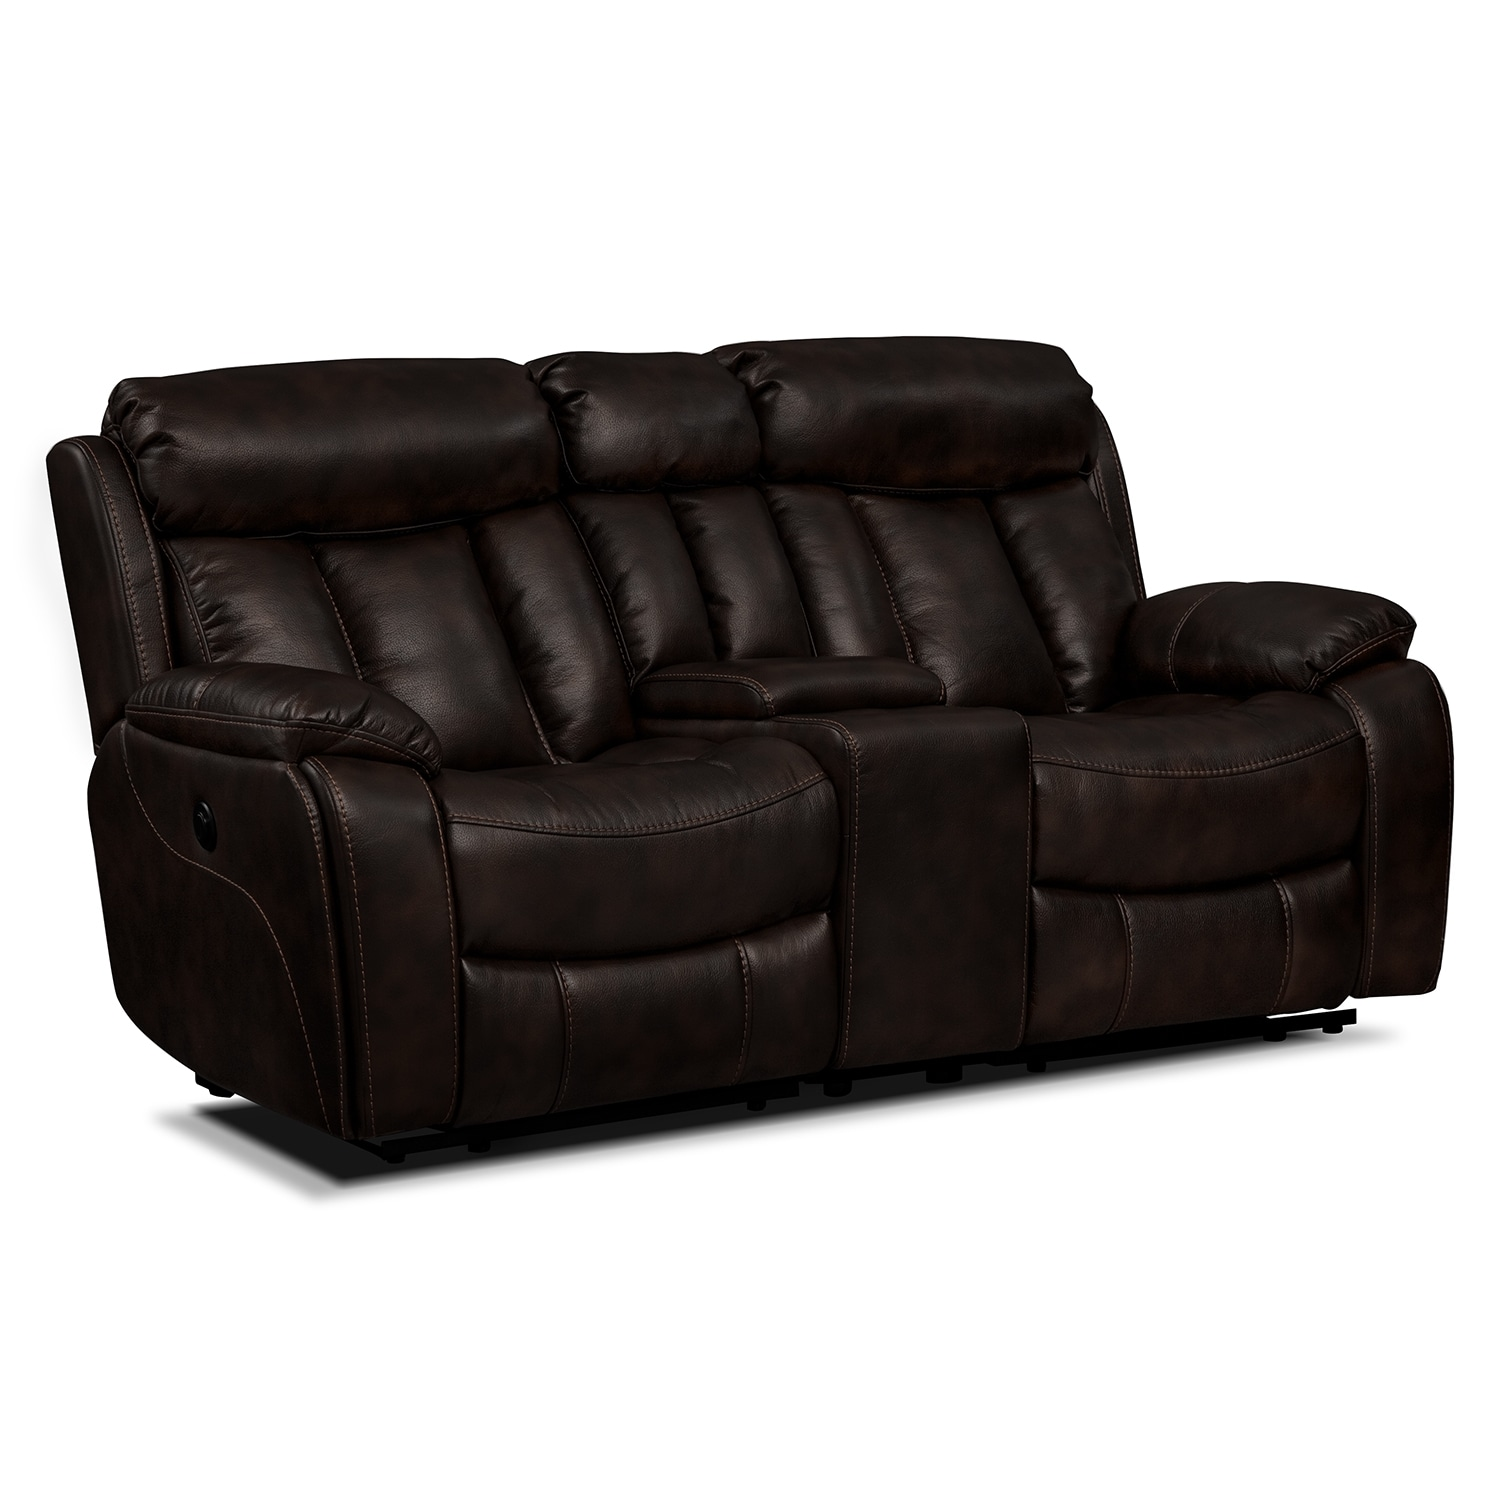 Diablo II Power Reclining Loveseat